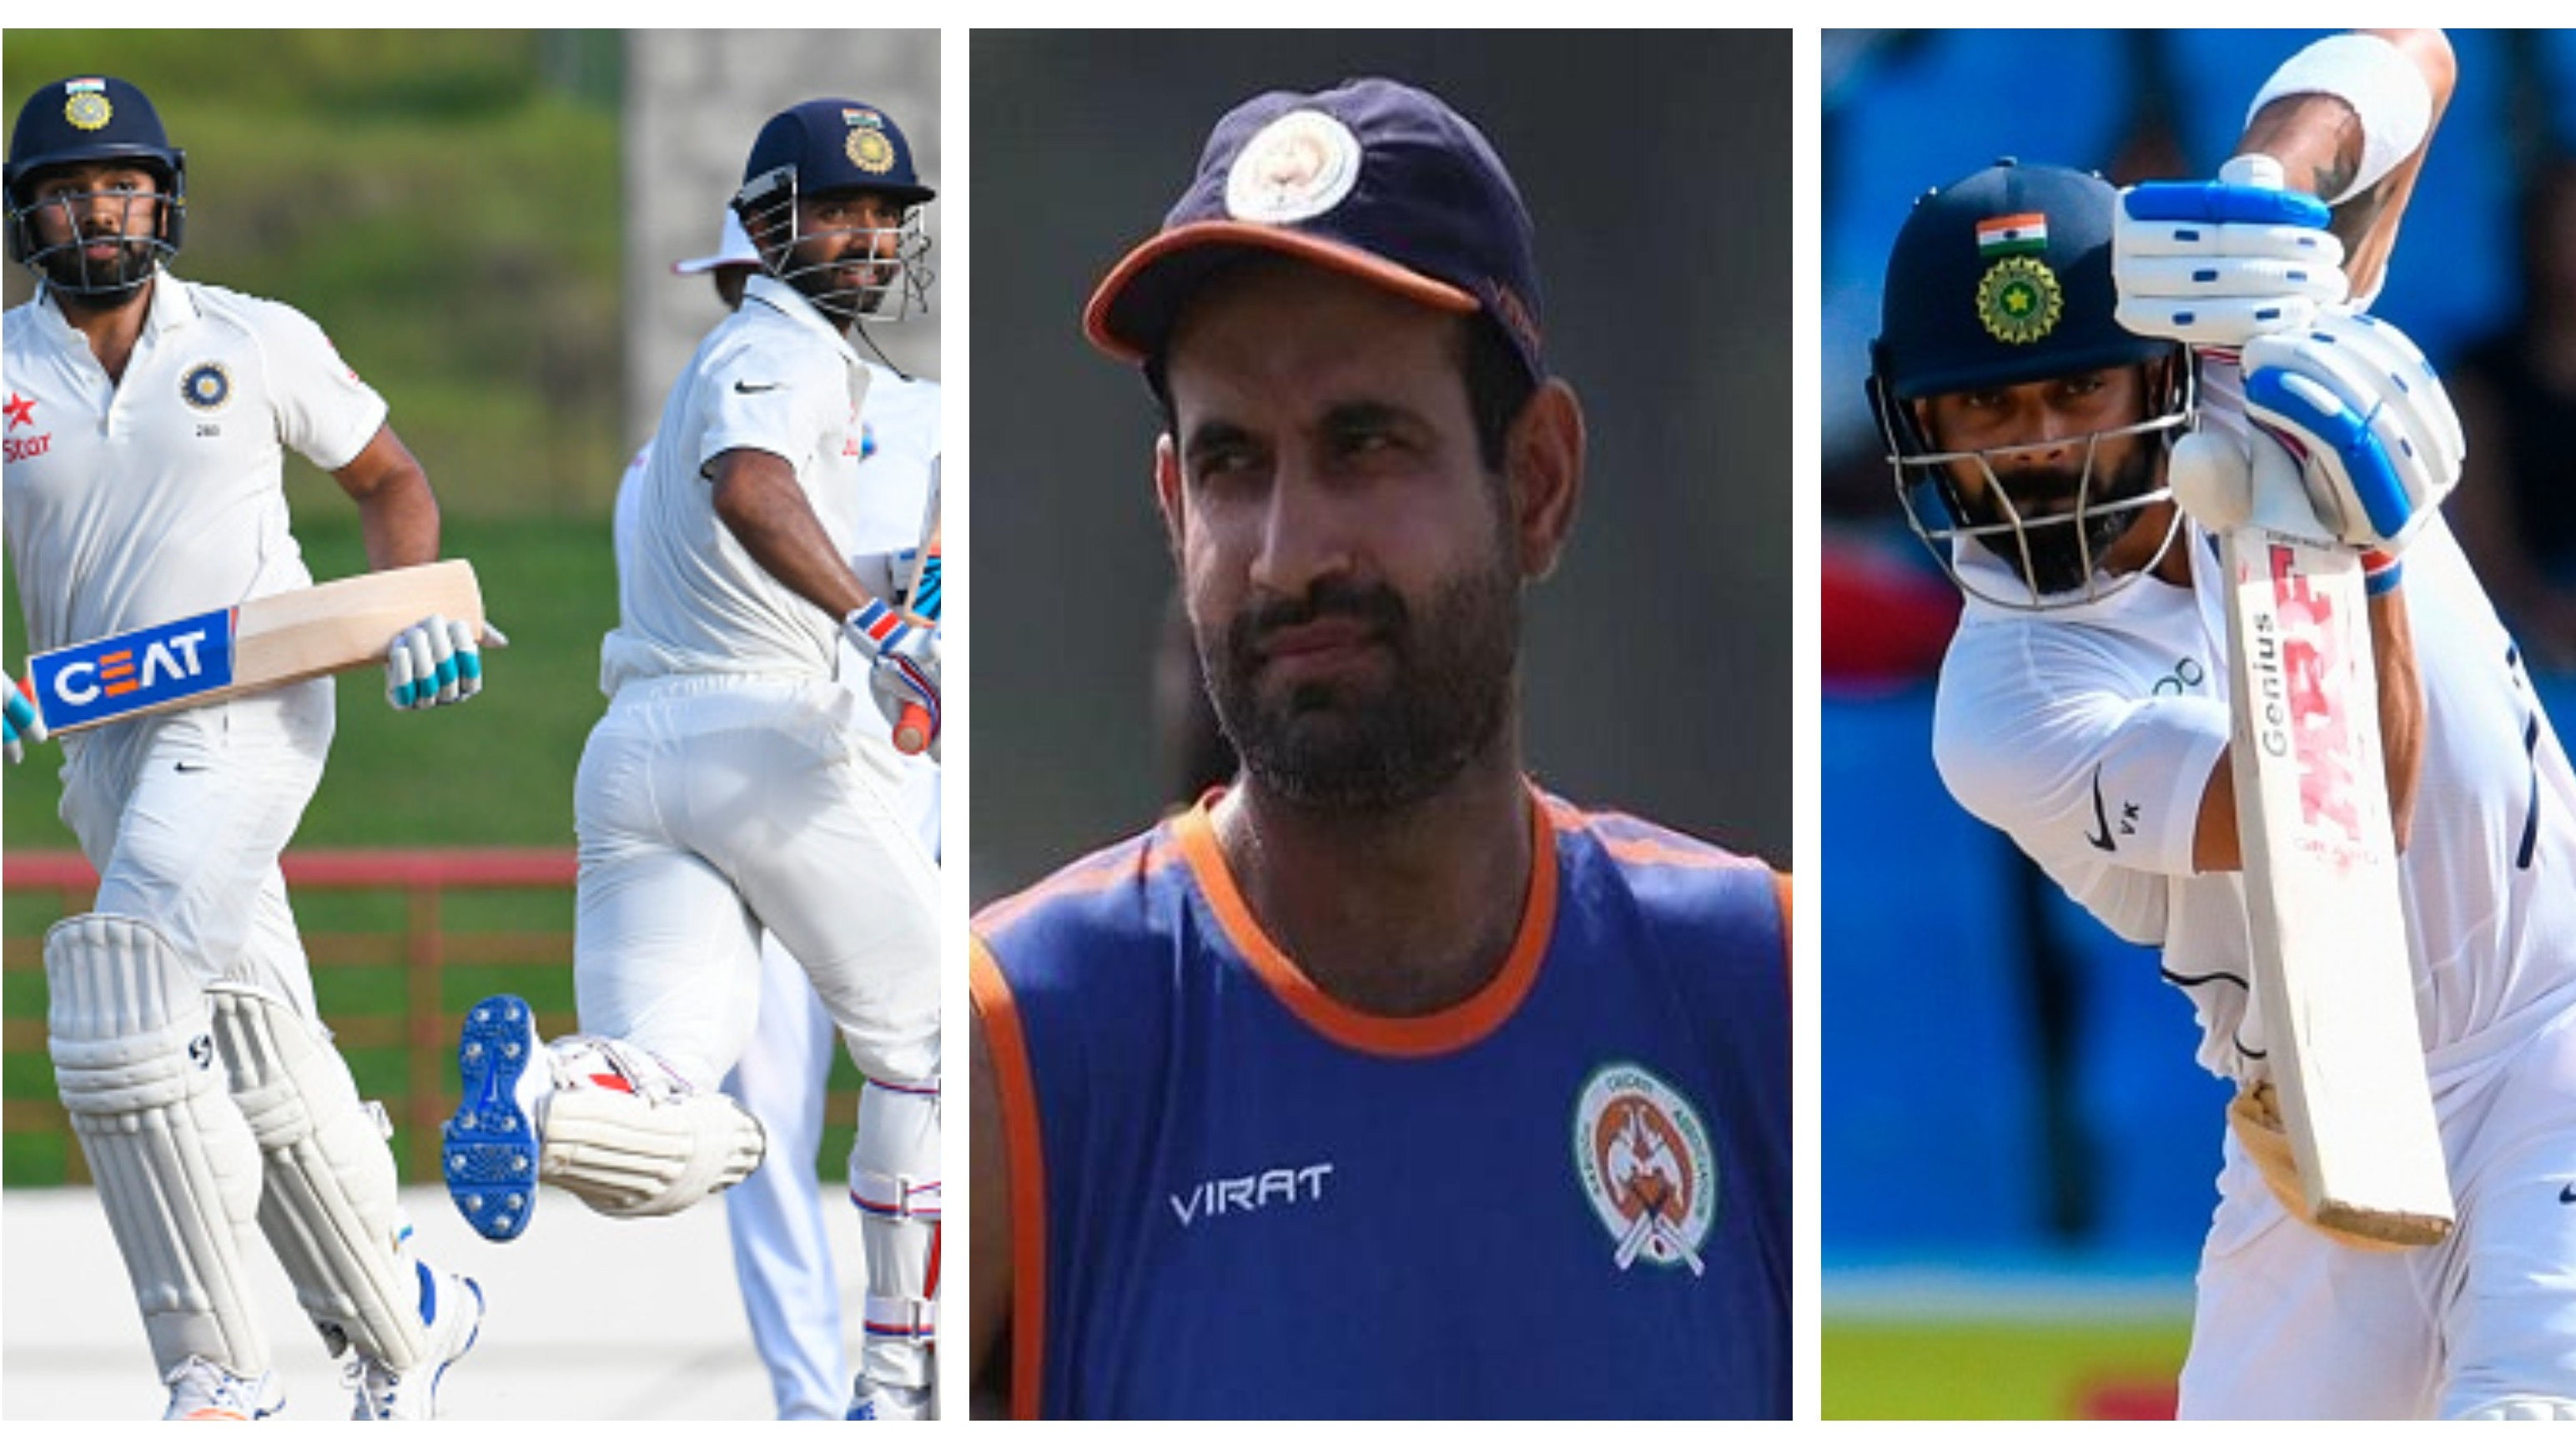 AUS v IND 2020-21: Irfan wants Rohit, not Rahane to captain India's Test team in Kohli's absence